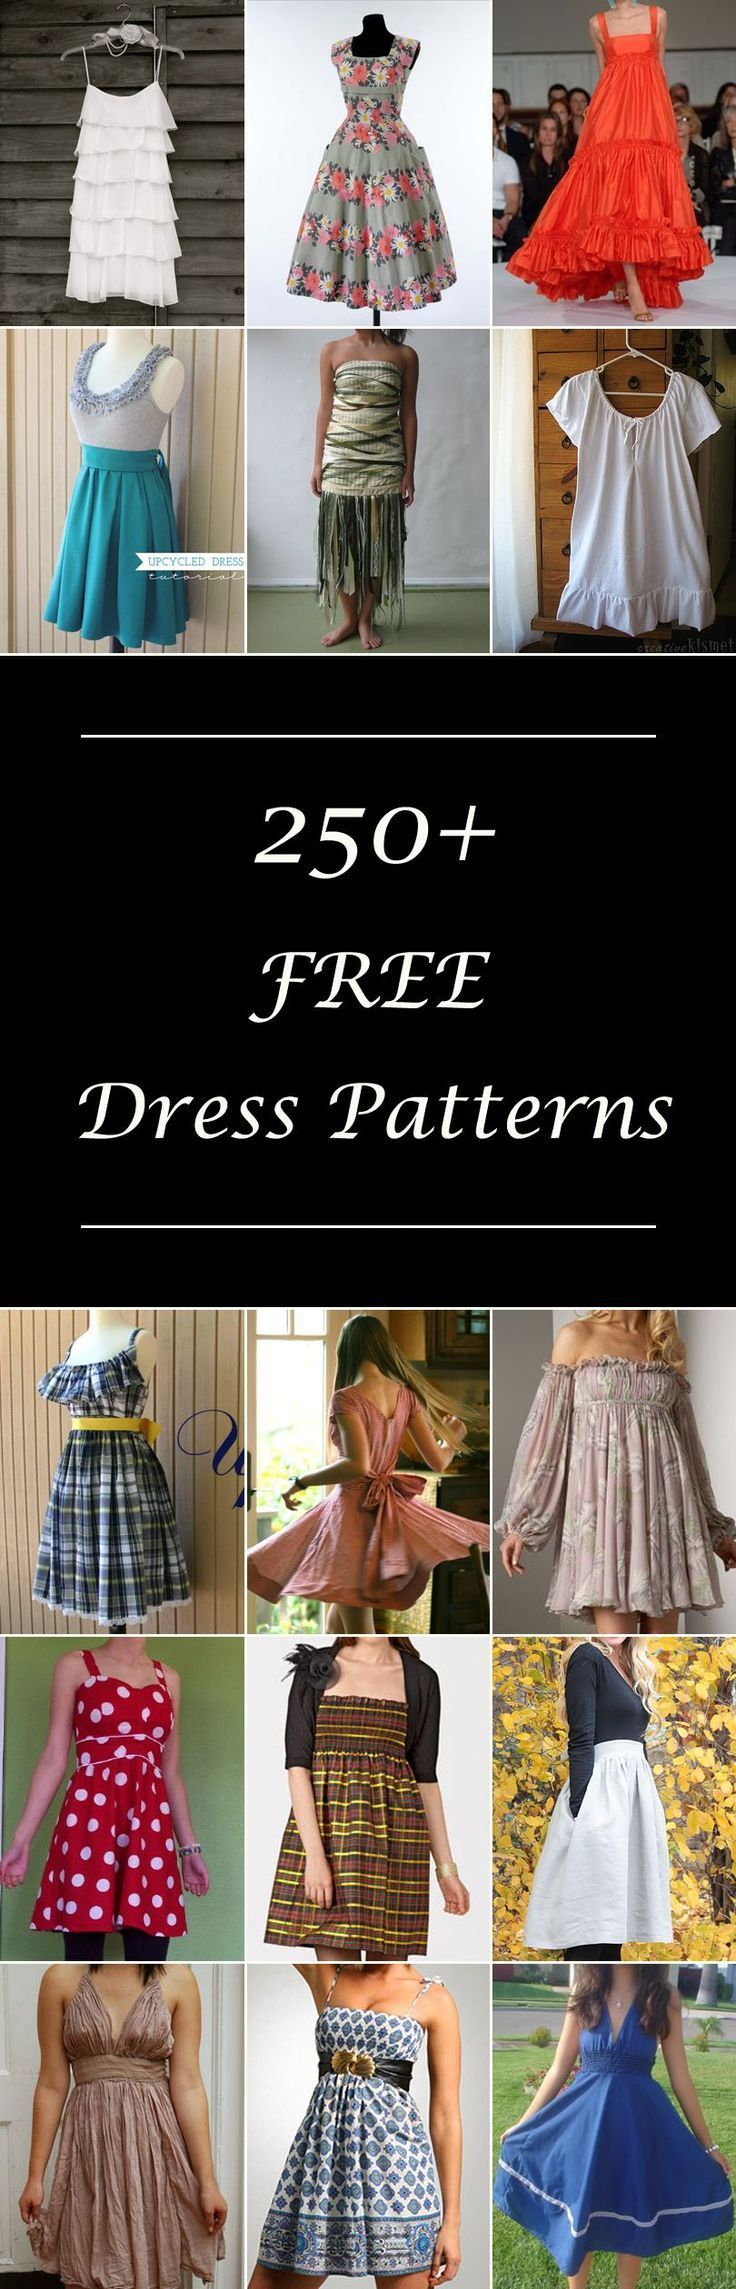 Lots of free women's dress patterns. Diy dress ideas, sewing tutorials & projects for women. Many simple & easy styles. Casual and formal. #diydresstutorial